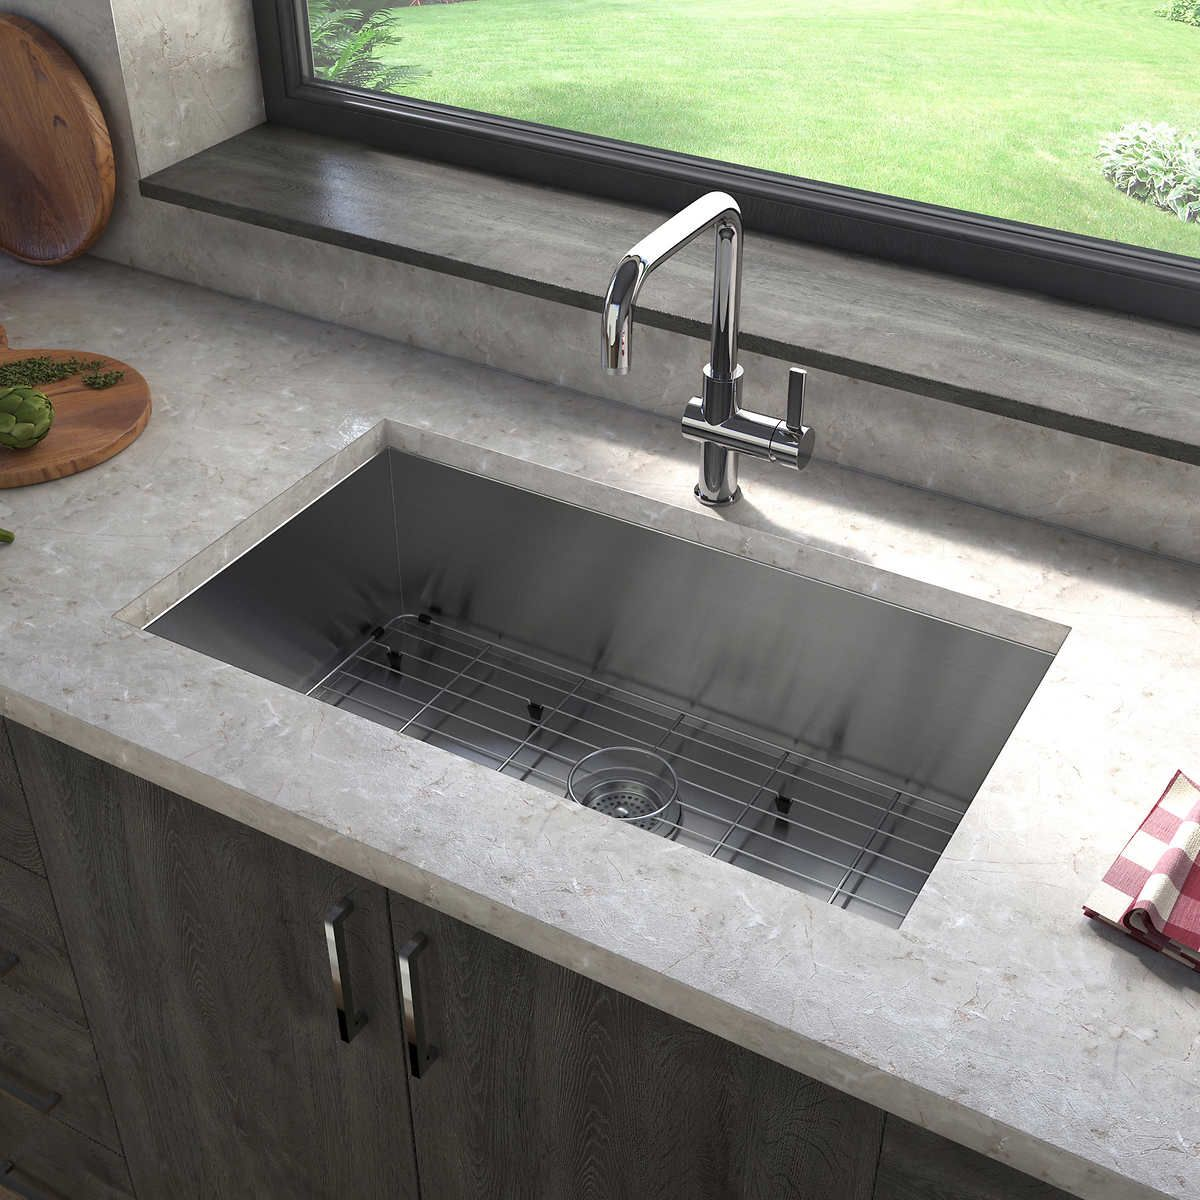 Kitchen Sinks Stainless Steel In 2020 Stainless Steel Kitchen Sink Sink Kitchen Sink